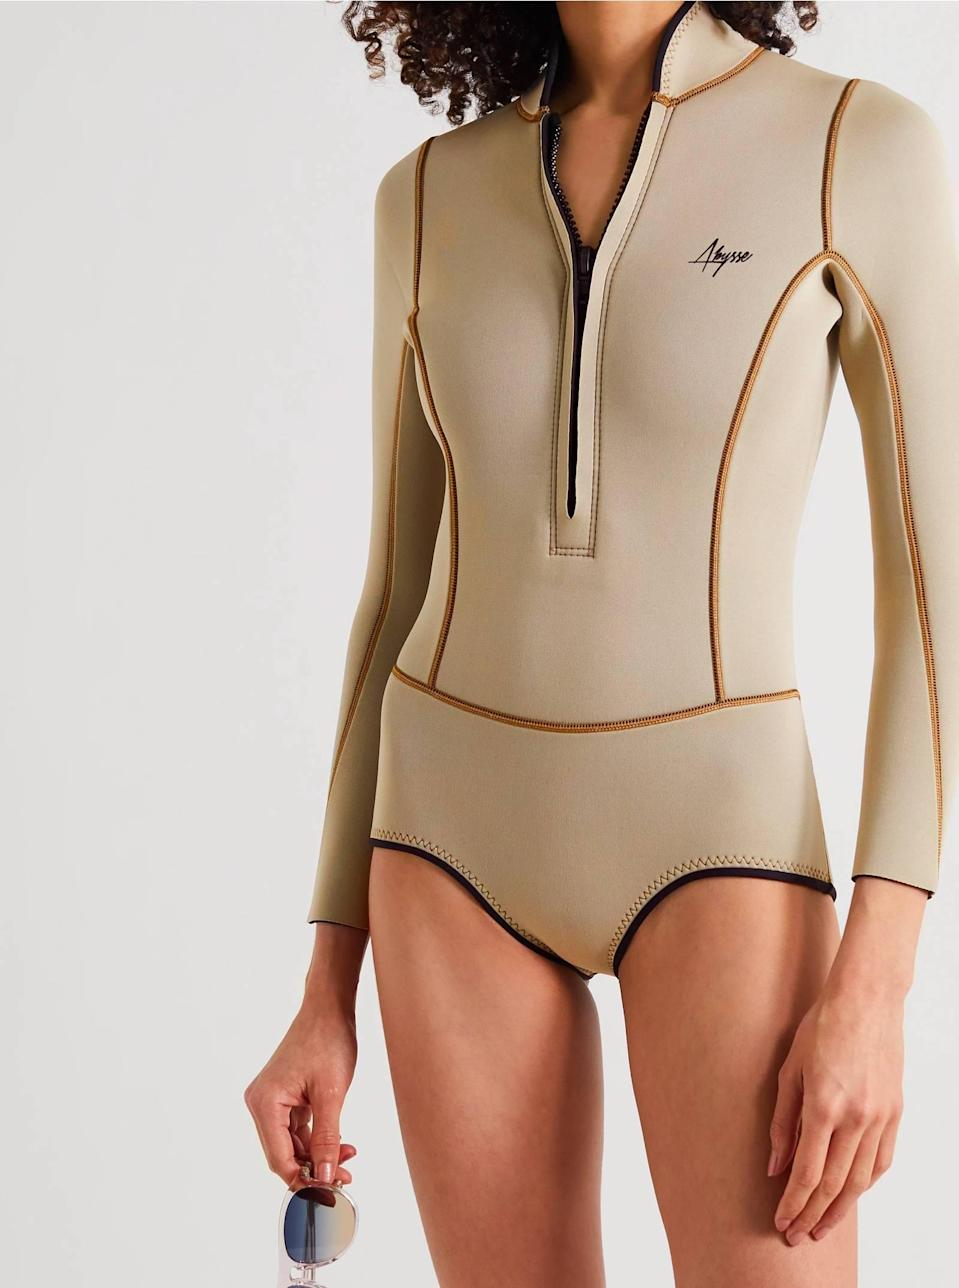 """The taupe color, the brief bottoms, the plunging neckline, and the body-shaping piping. Excuse us while we add 10 to cart. $348, Net-a-Porter. <a href=""""https://www.net-a-porter.com/en-us/shop/product/abysse/sport/swimwear/lotte-neoprene-swimsuit/10163292707608670"""" rel=""""nofollow noopener"""" target=""""_blank"""" data-ylk=""""slk:Get it now!"""" class=""""link rapid-noclick-resp"""">Get it now!</a>"""